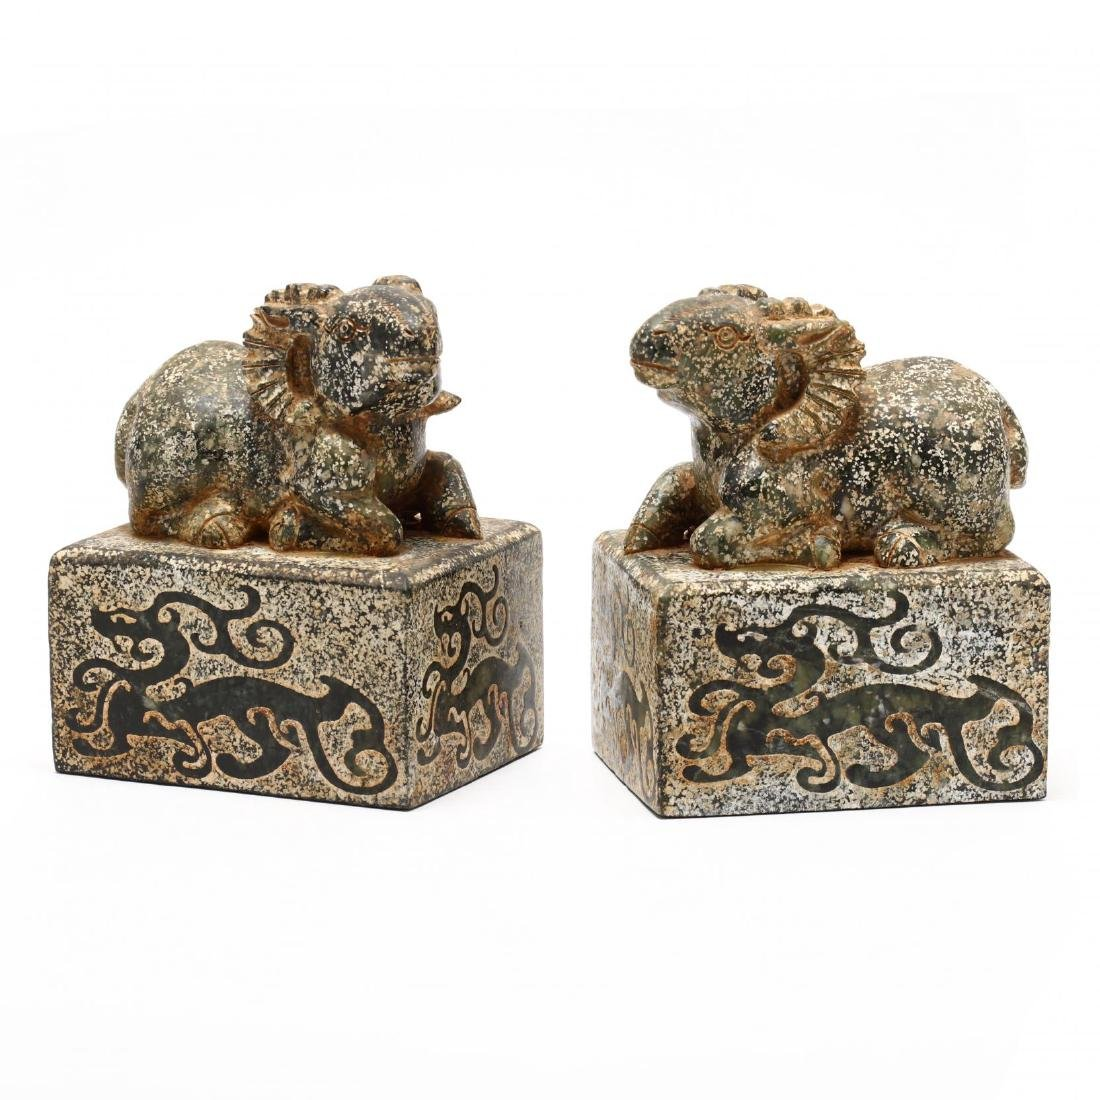 A Pair of Chinese Ram Stone Seals